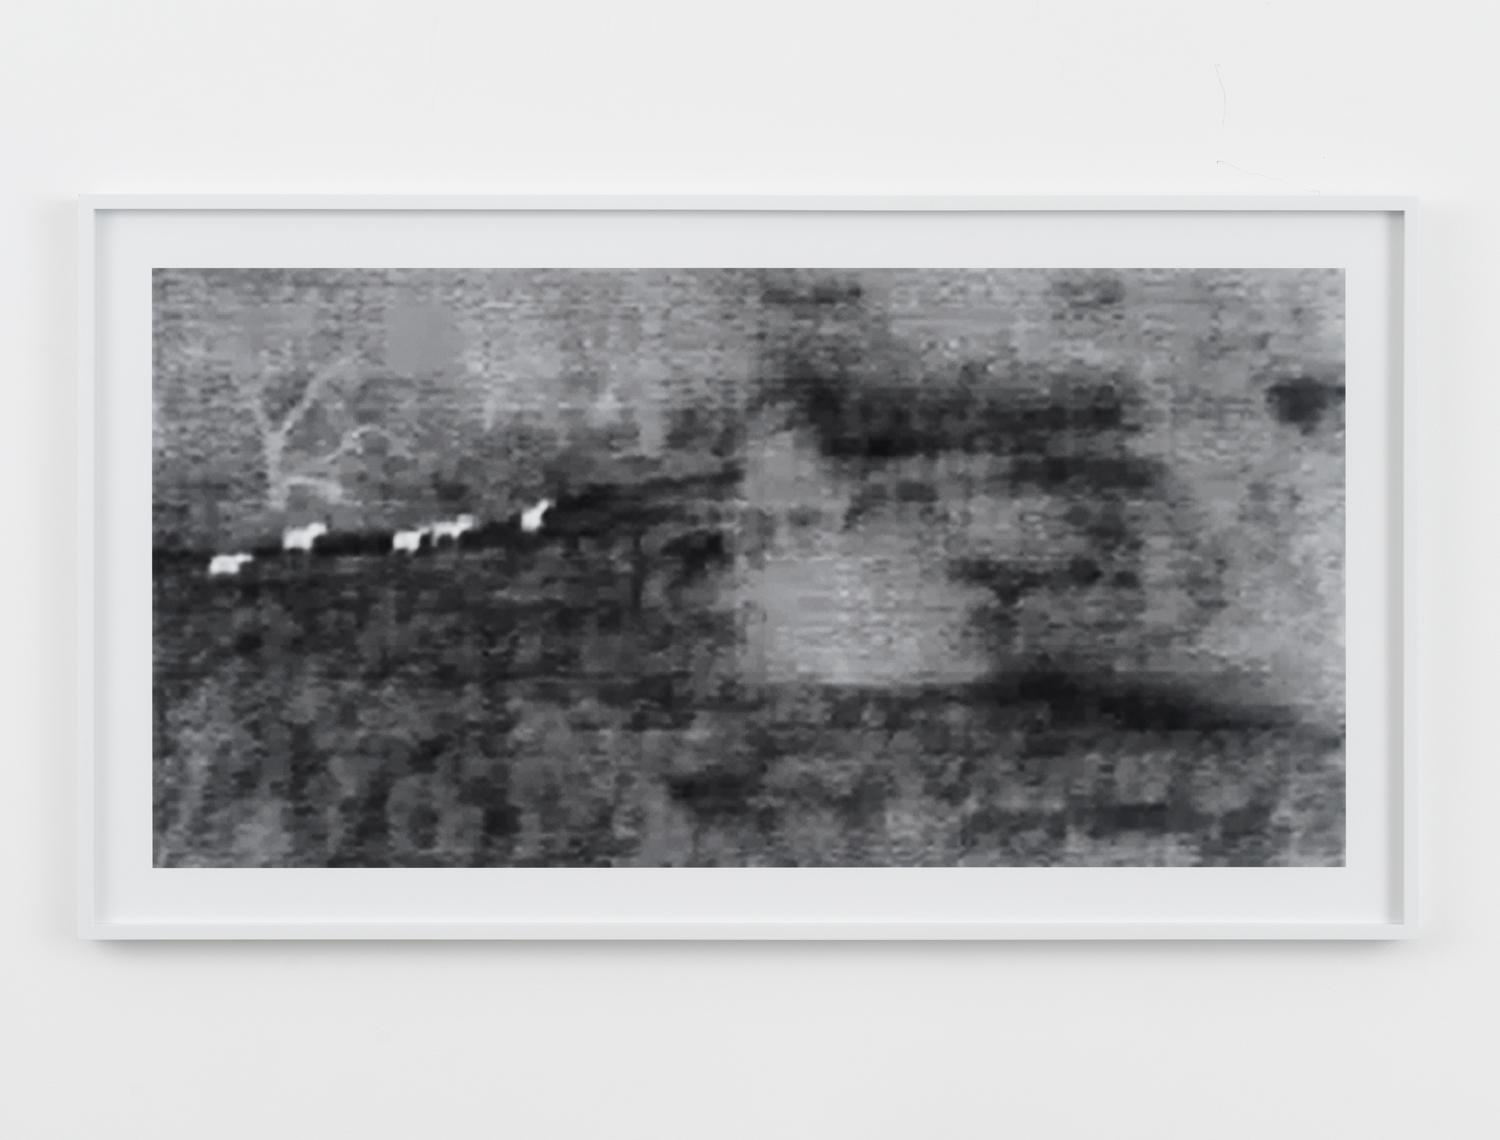 Barbara Ess, Wild Horses [Surveillance Series], 2010, archival pigment print, 24h x 44w in.